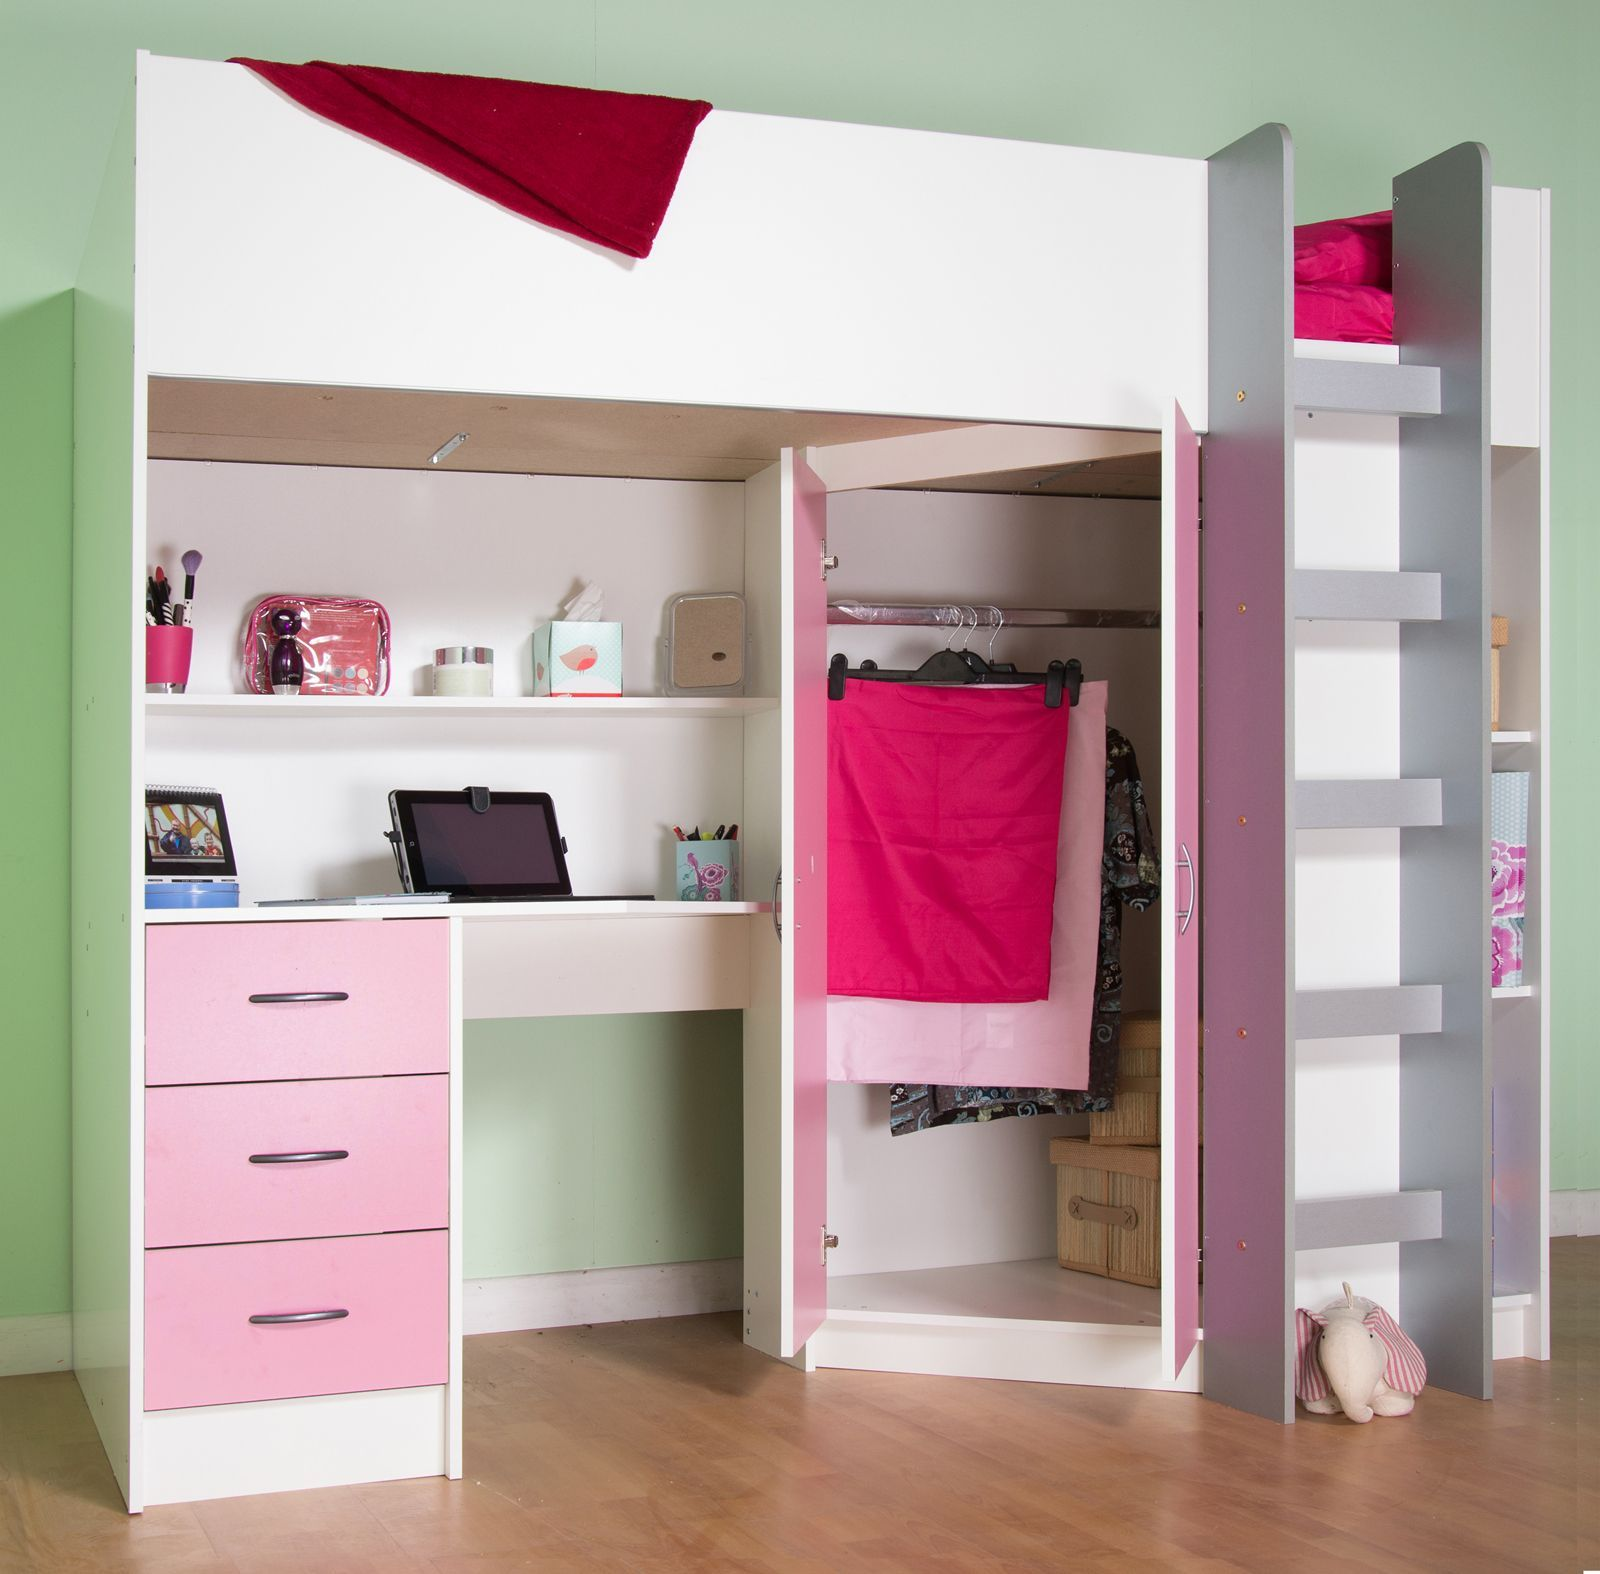 Small Box Room Cabin Bed For Grandma: Calder High Sleeper Cabin Bed With Desk Wardrobe Drawers